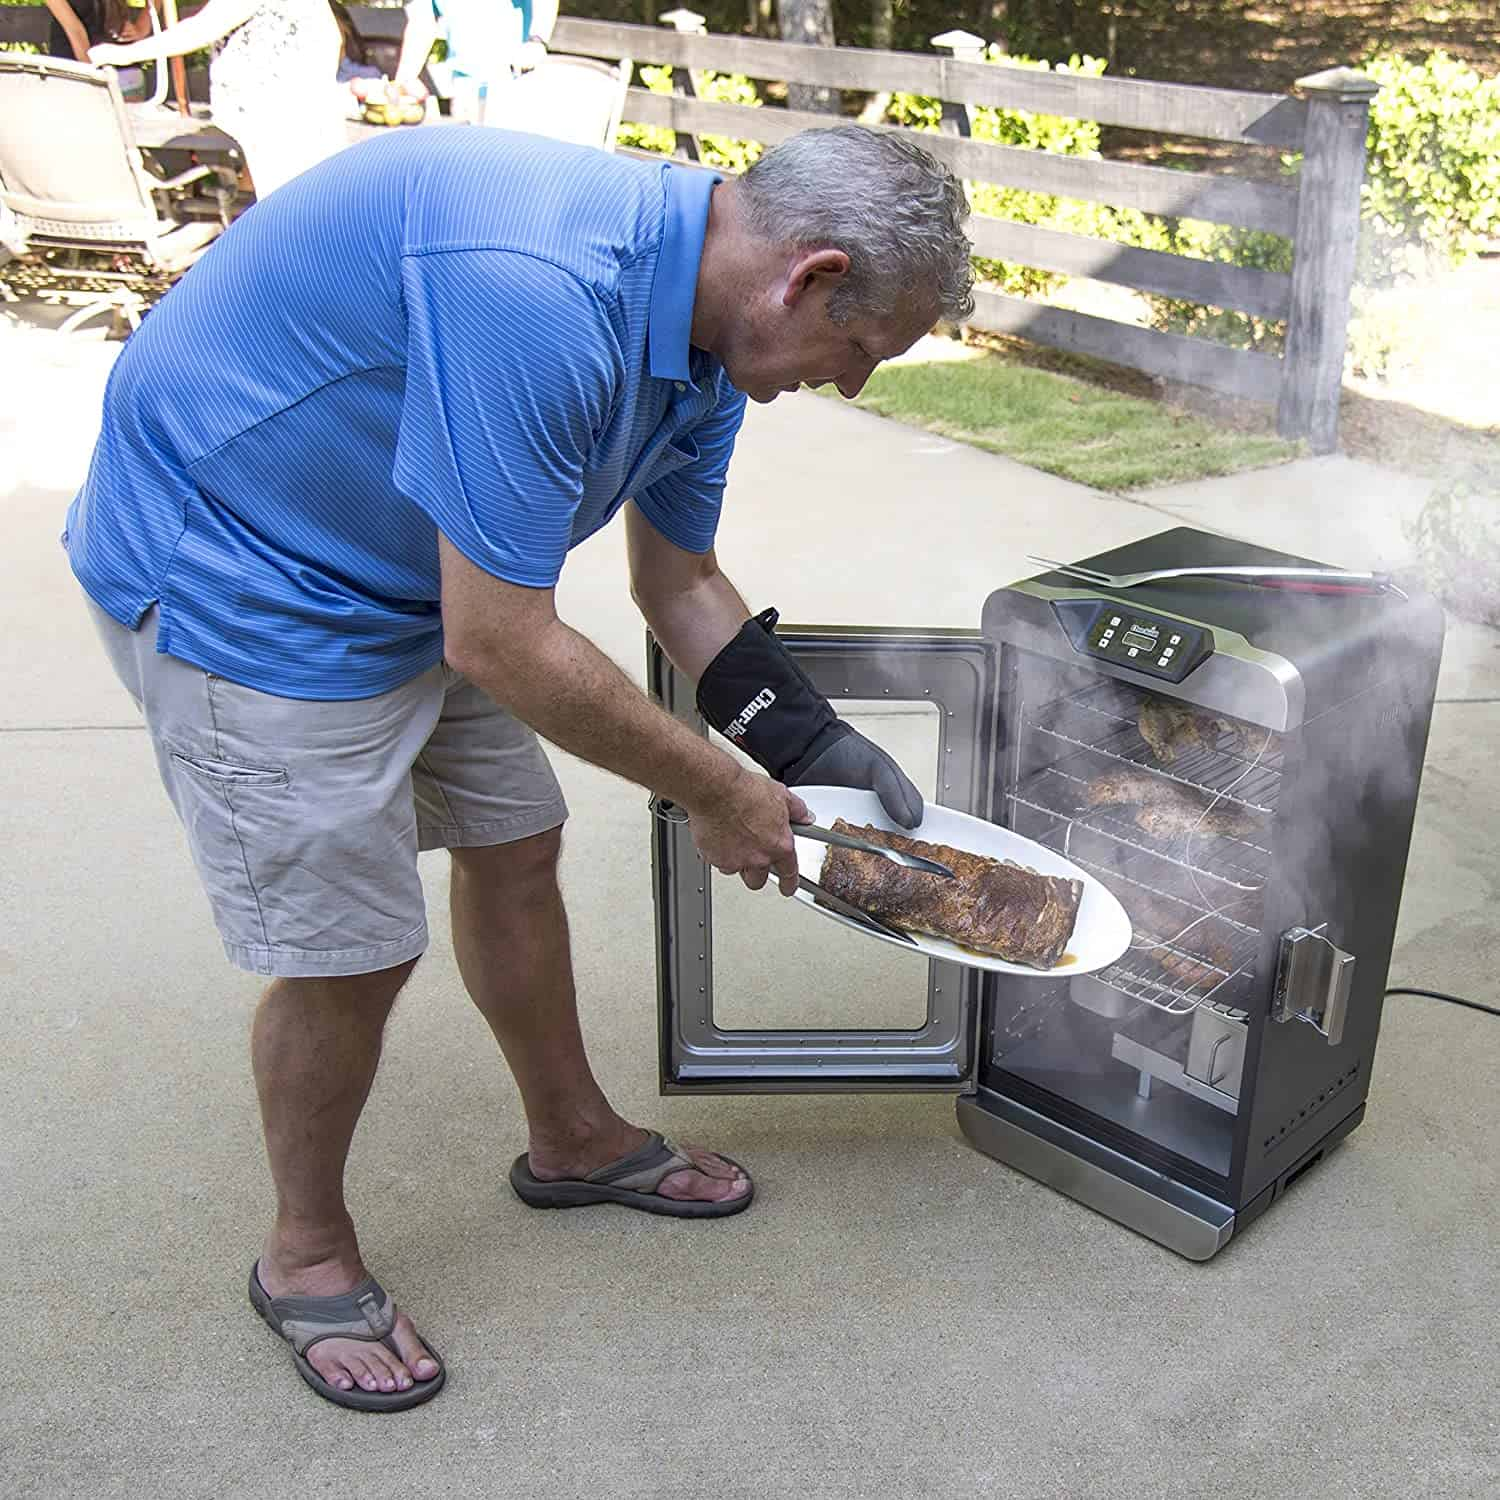 Easiest to use & with remote control- Char-Broil 17202004 Digital Electric Smoker in action